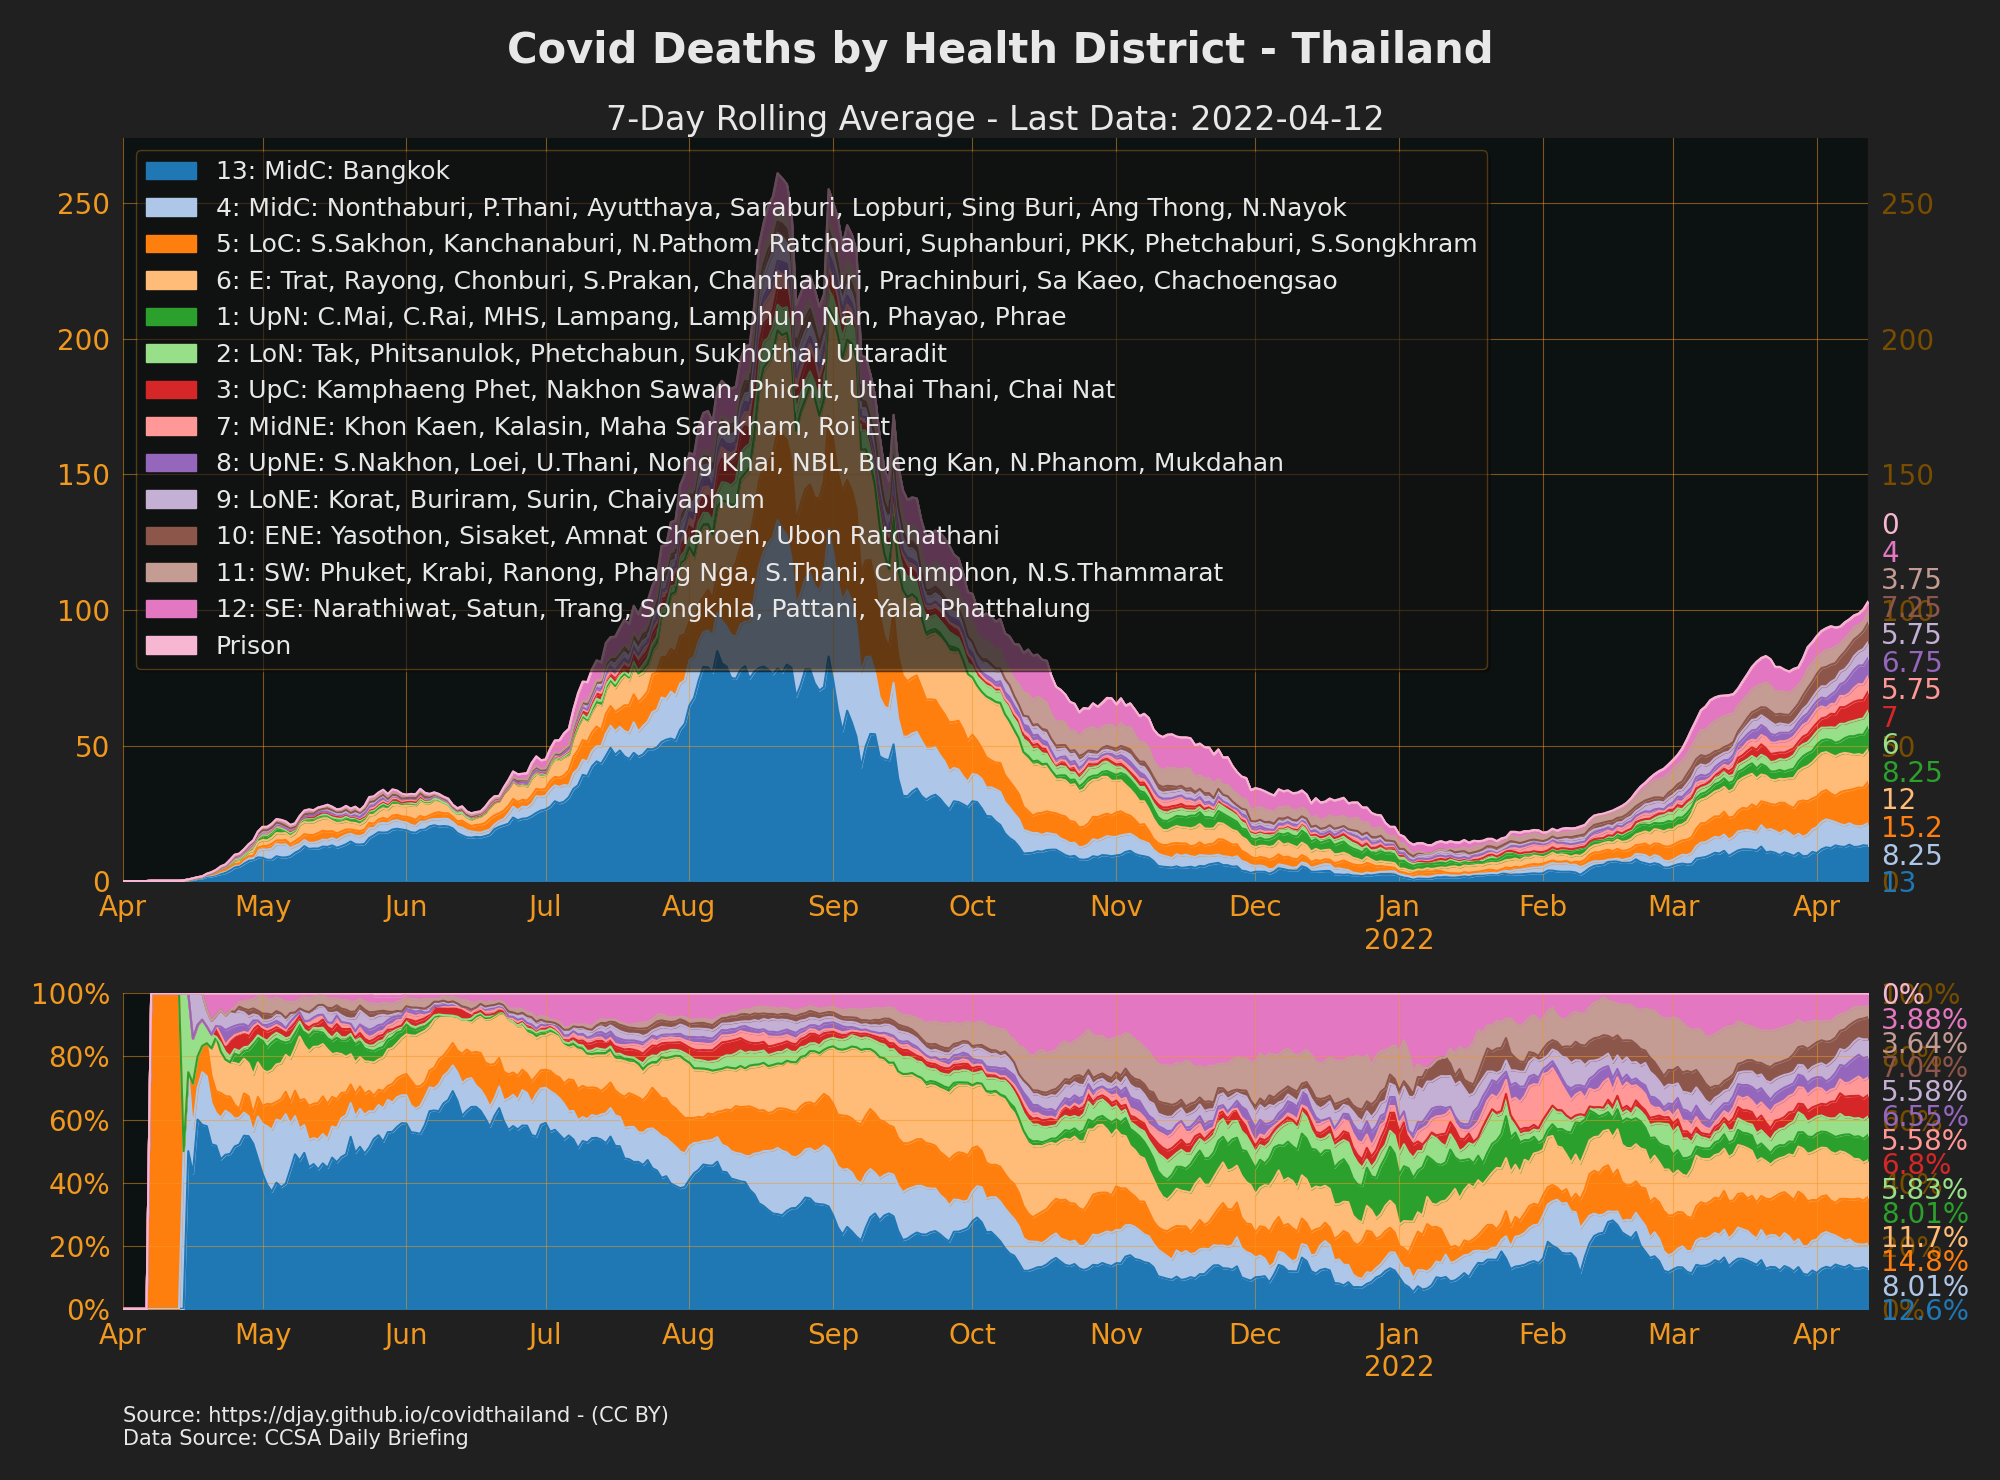 Thailand Covid Deaths by Health District